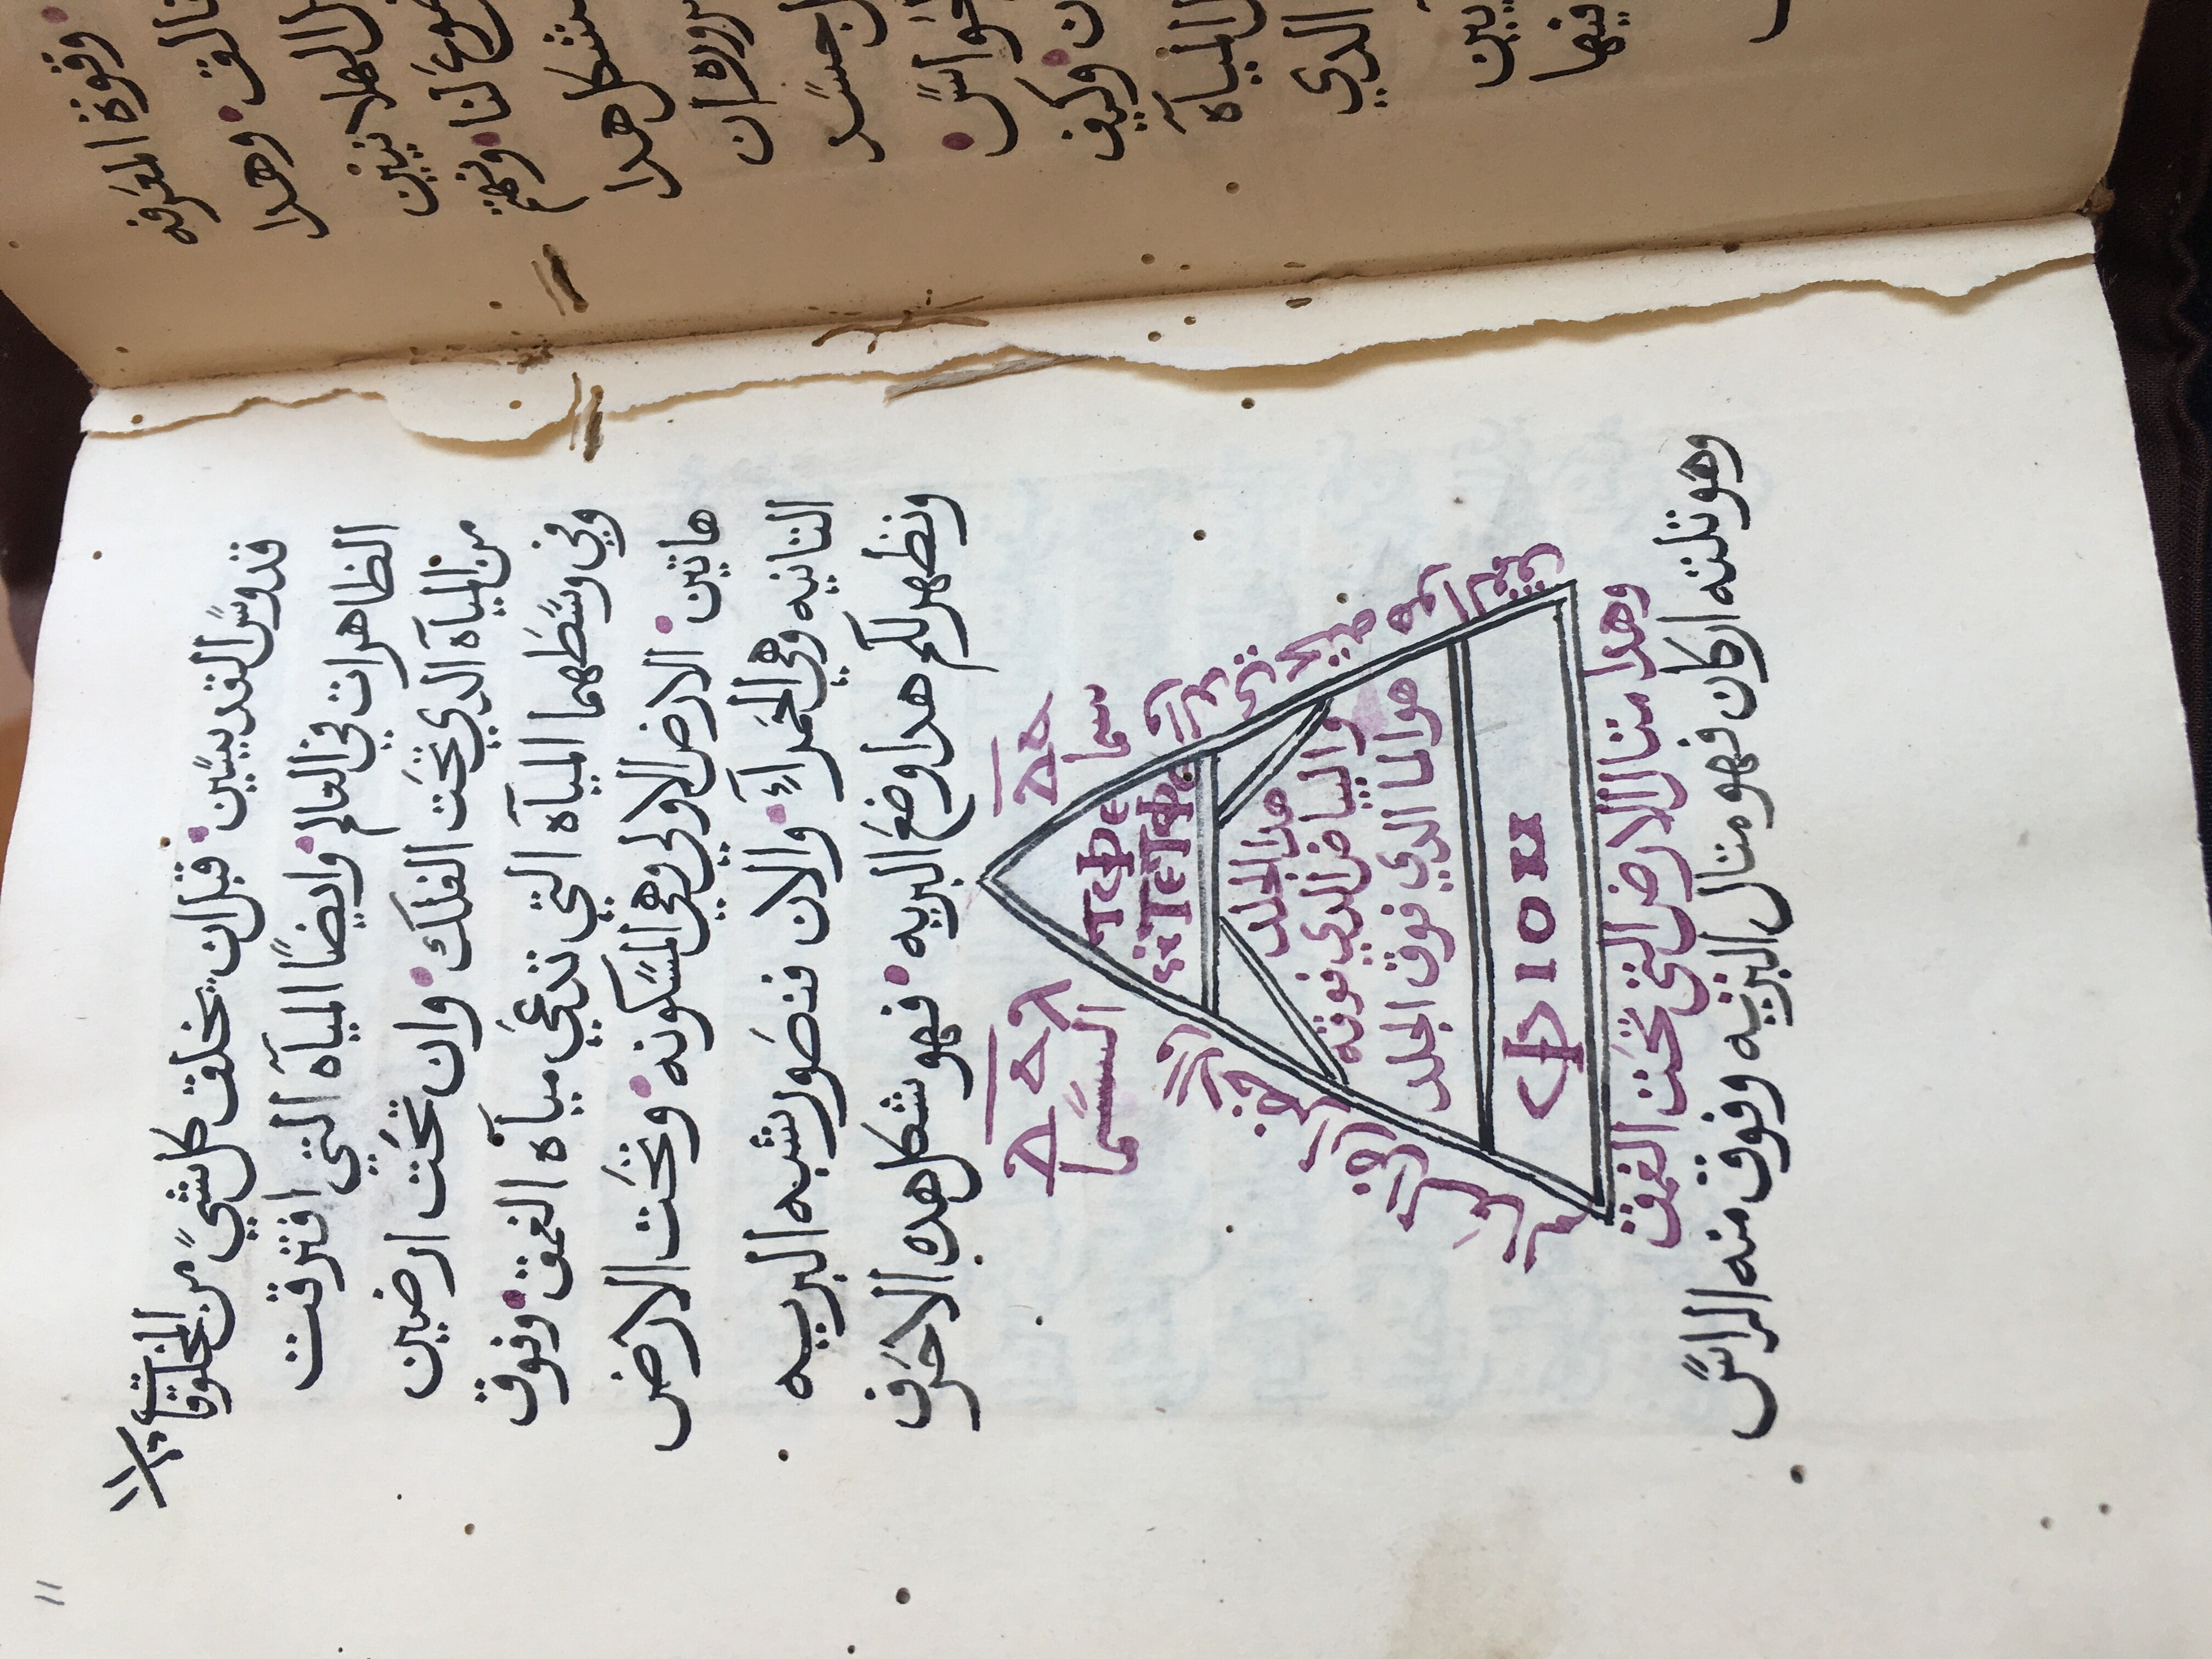 An image of a manuscript page with Arabic text in black ink and an illustration of a Greek letter in red and black ink.